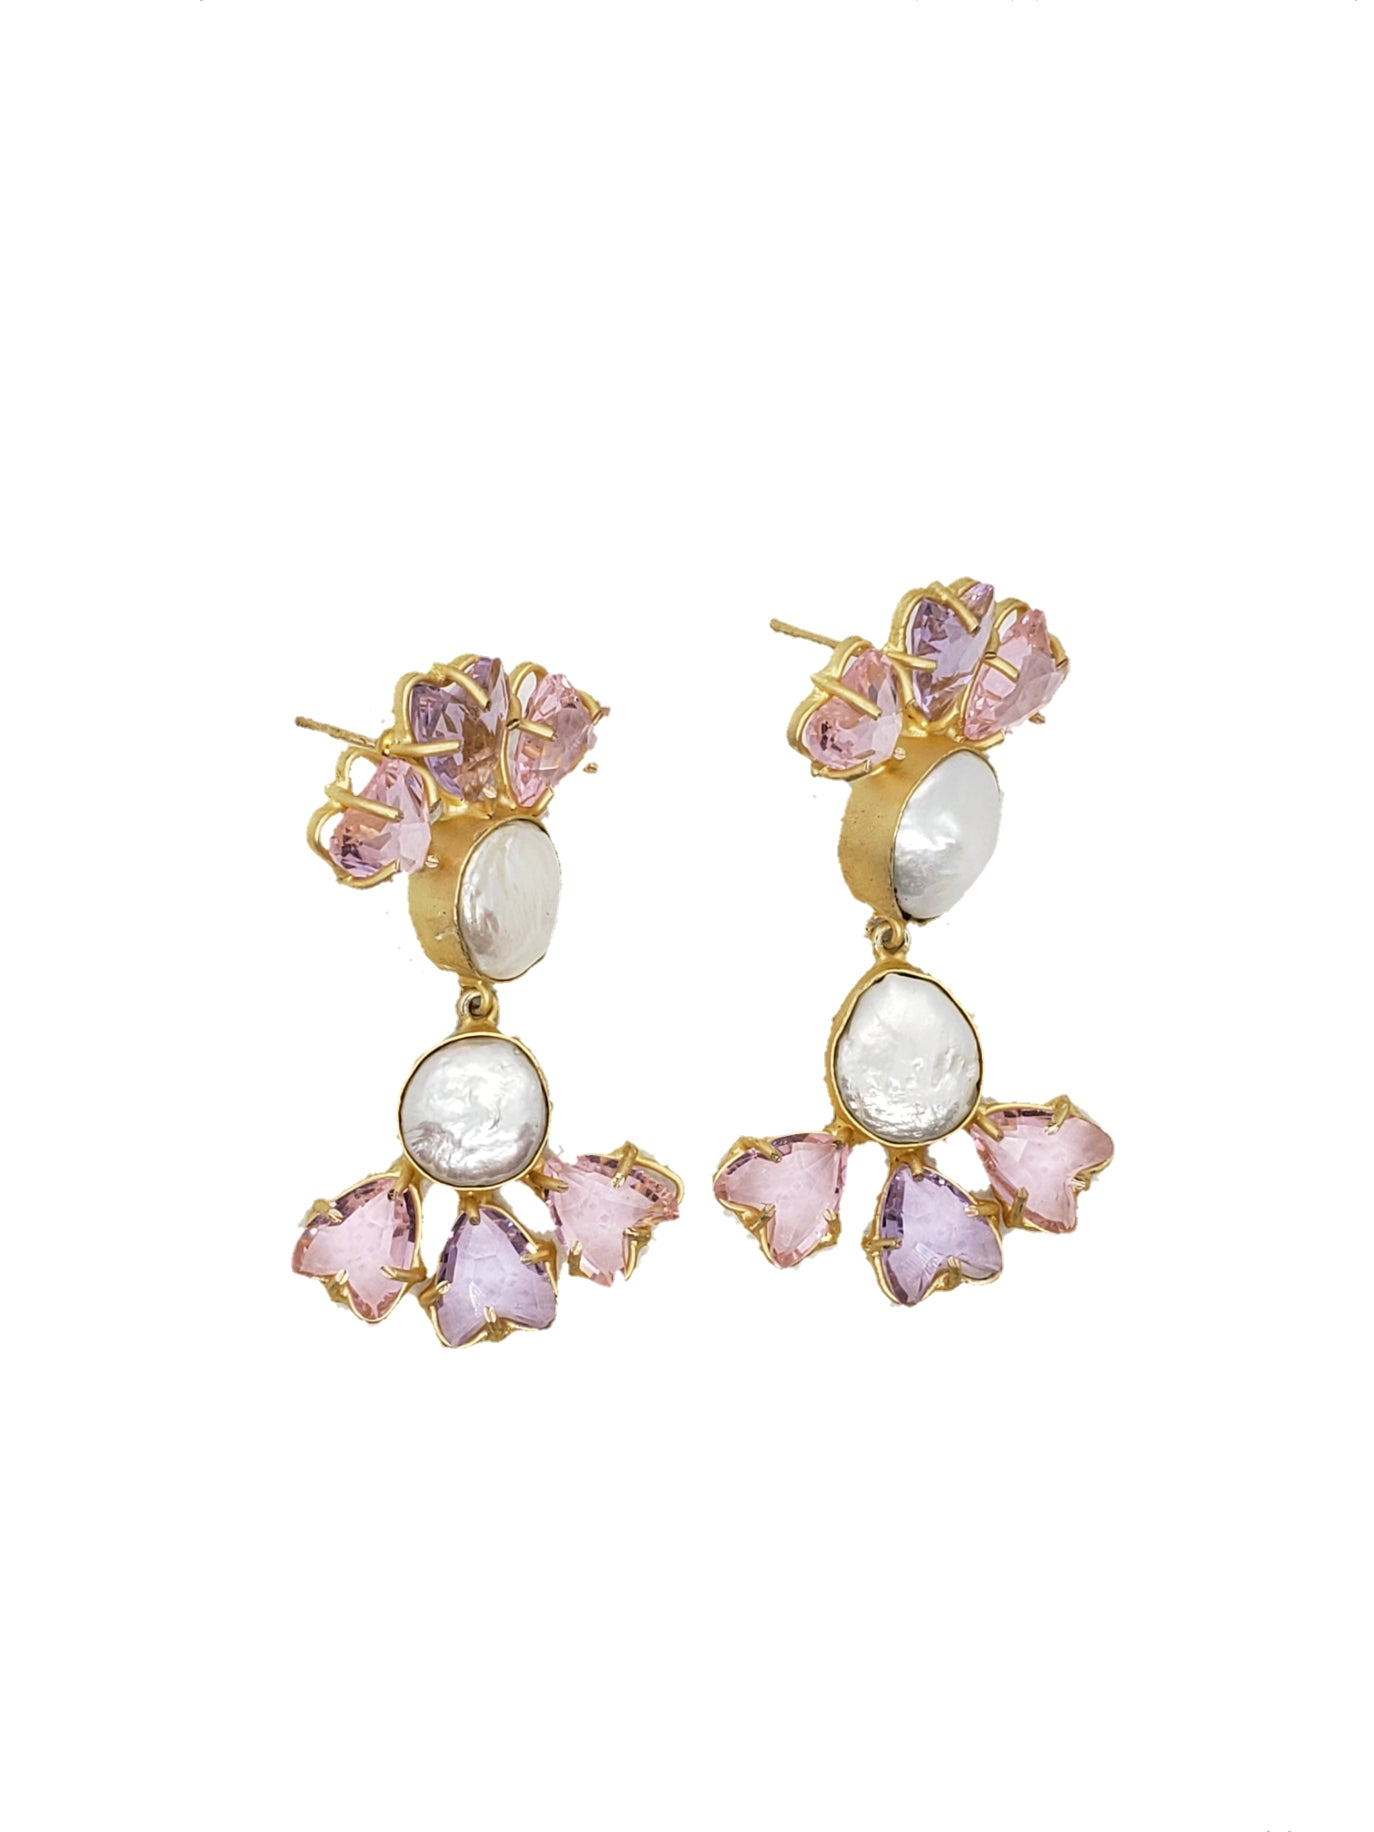 Pink Crystal and Mother of Pearl Drop Earrings - The Bauble Shop